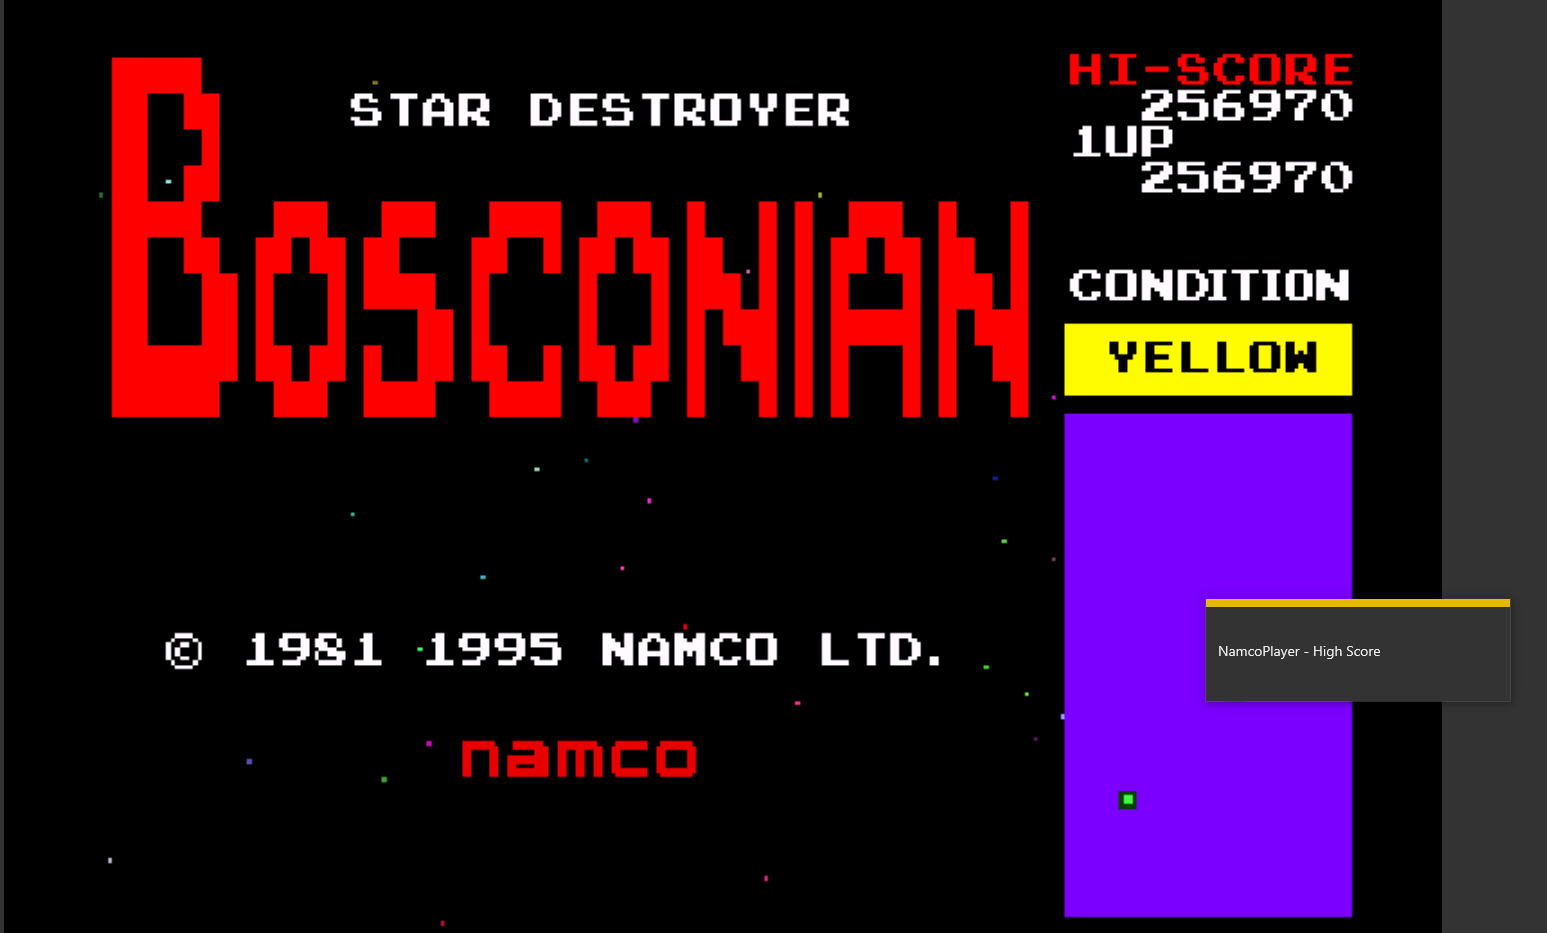 NamcoPlayer: Namco Museum Vol. 1: Bosconian (Playstation 1 Emulated) 256,970 points on 2020-10-26 17:02:30